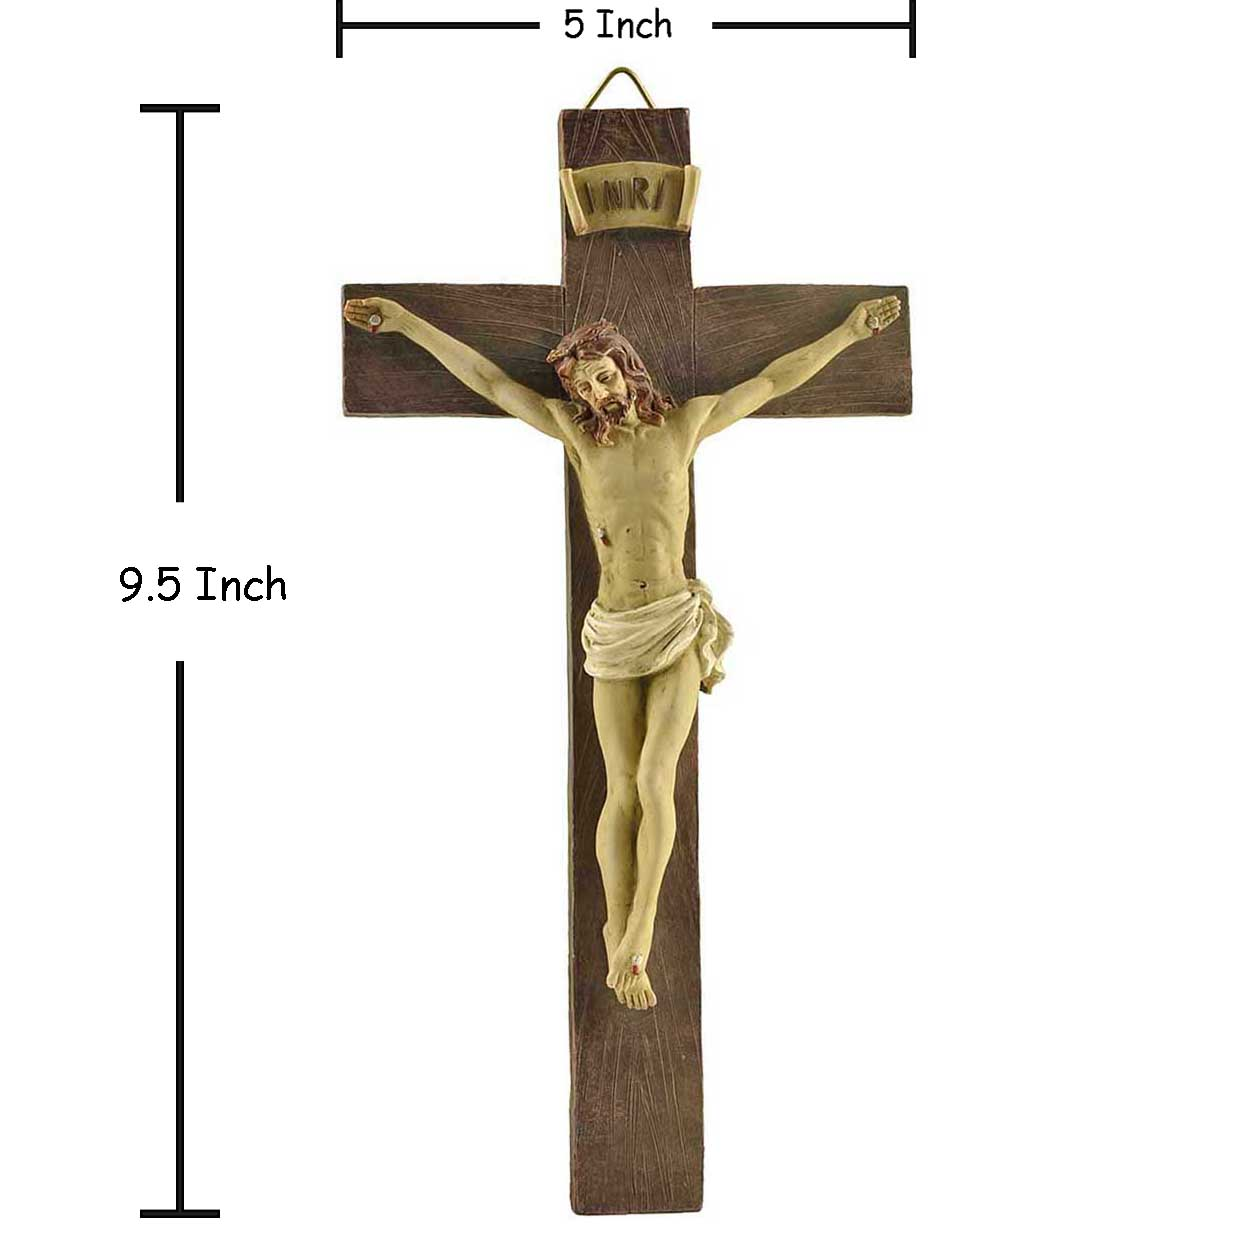 Handpainted Wood Textured Crucifix Wall Cross Jesus Nailed On The Cross Religious Gift Wall Crosses Aliexpress